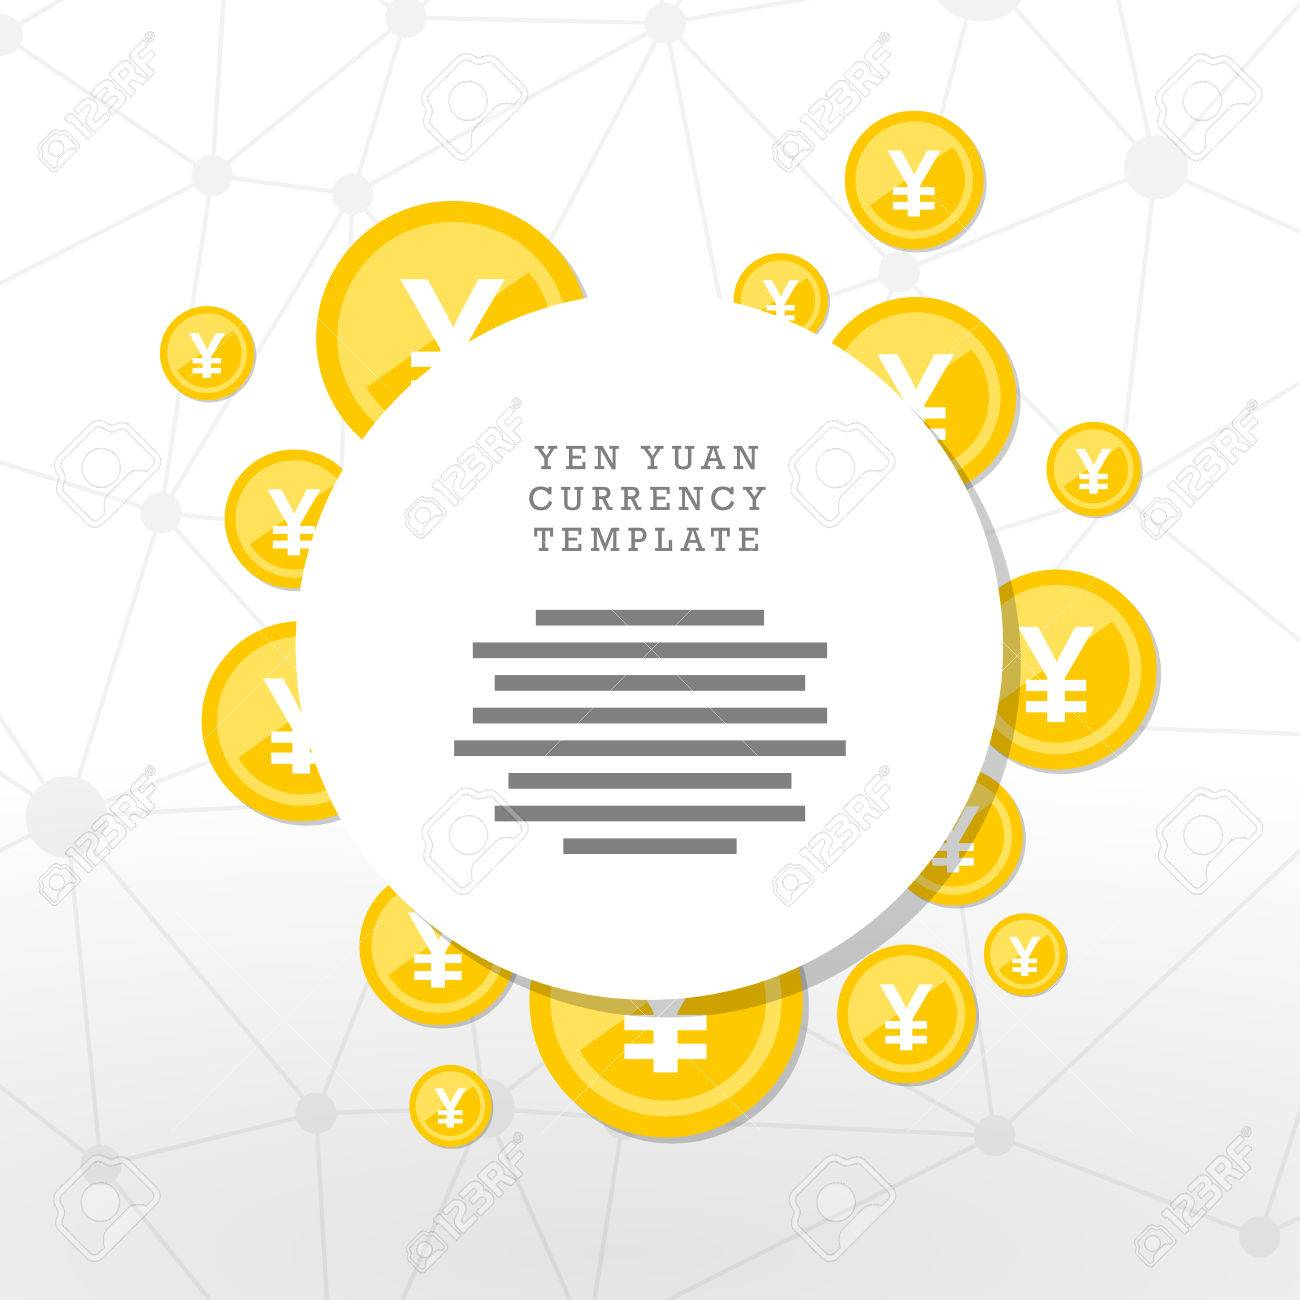 Mainstream currency gold coins. Money concept illustration. Vector graphic template. - 41742528